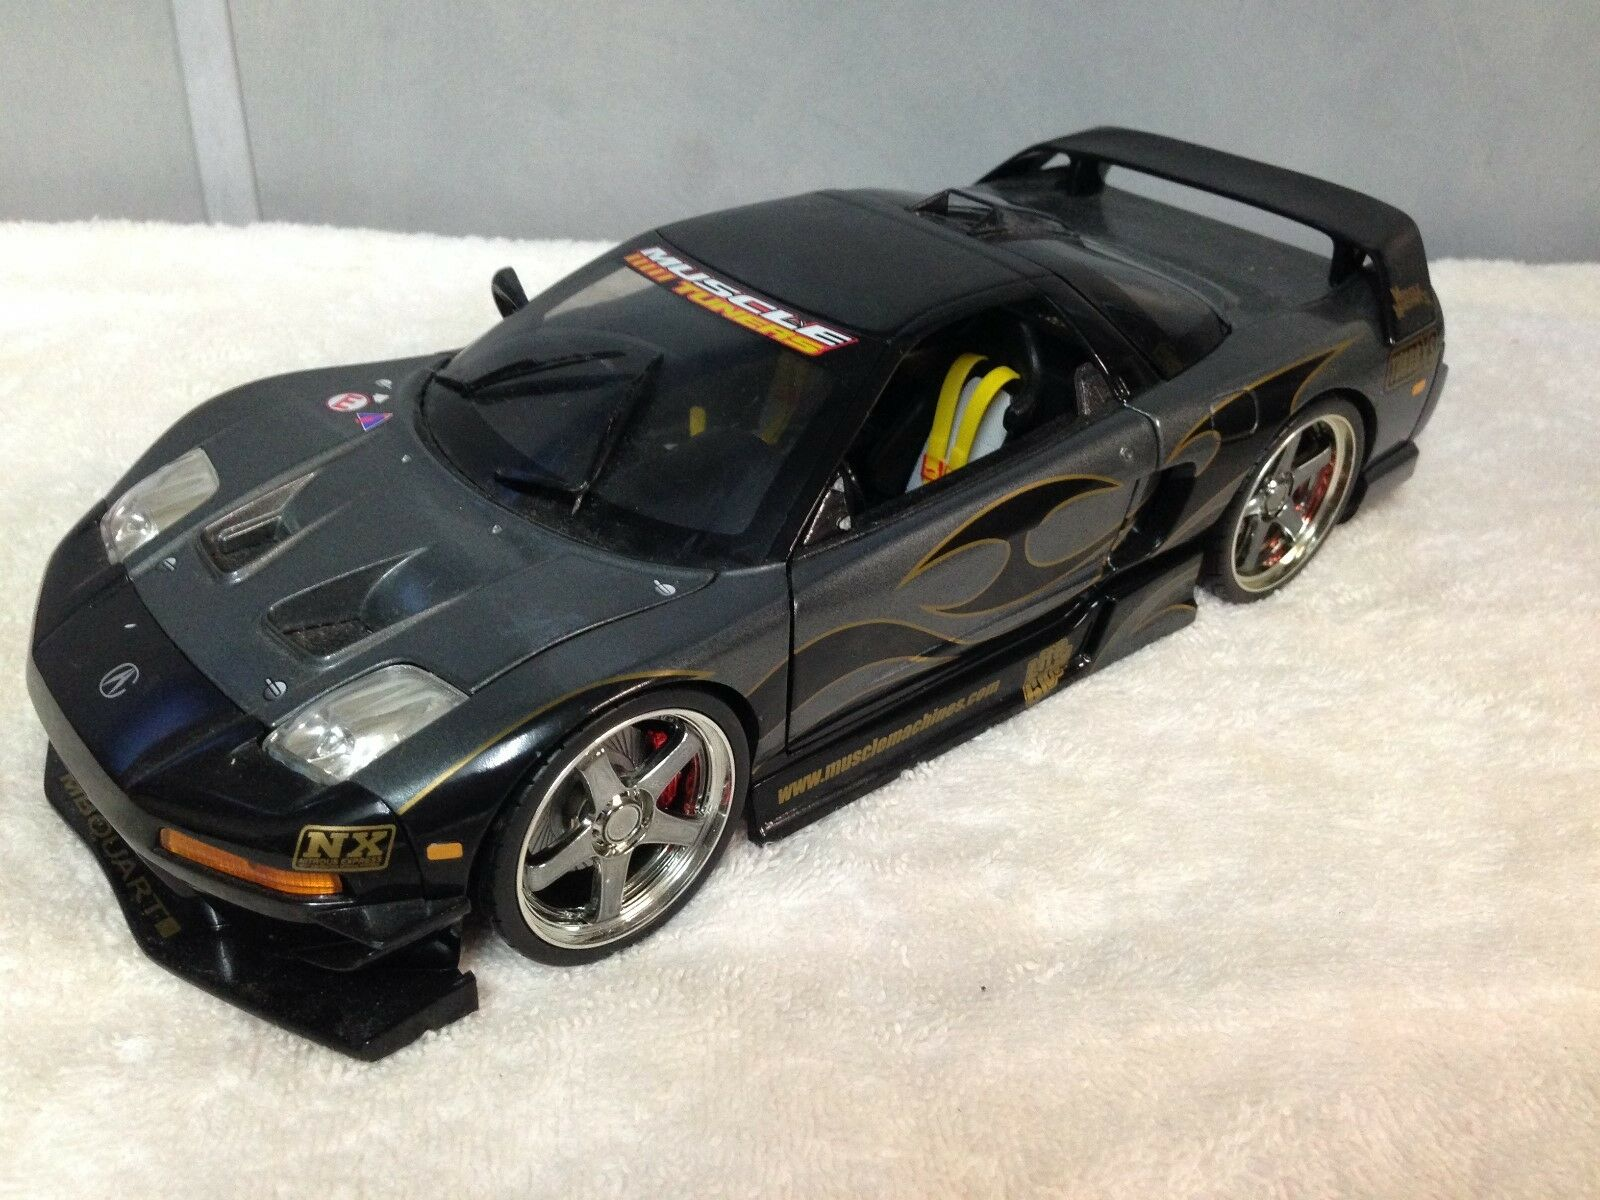 2003 Funline 1 18 Scale Die Cast Car Honda Accura NSX